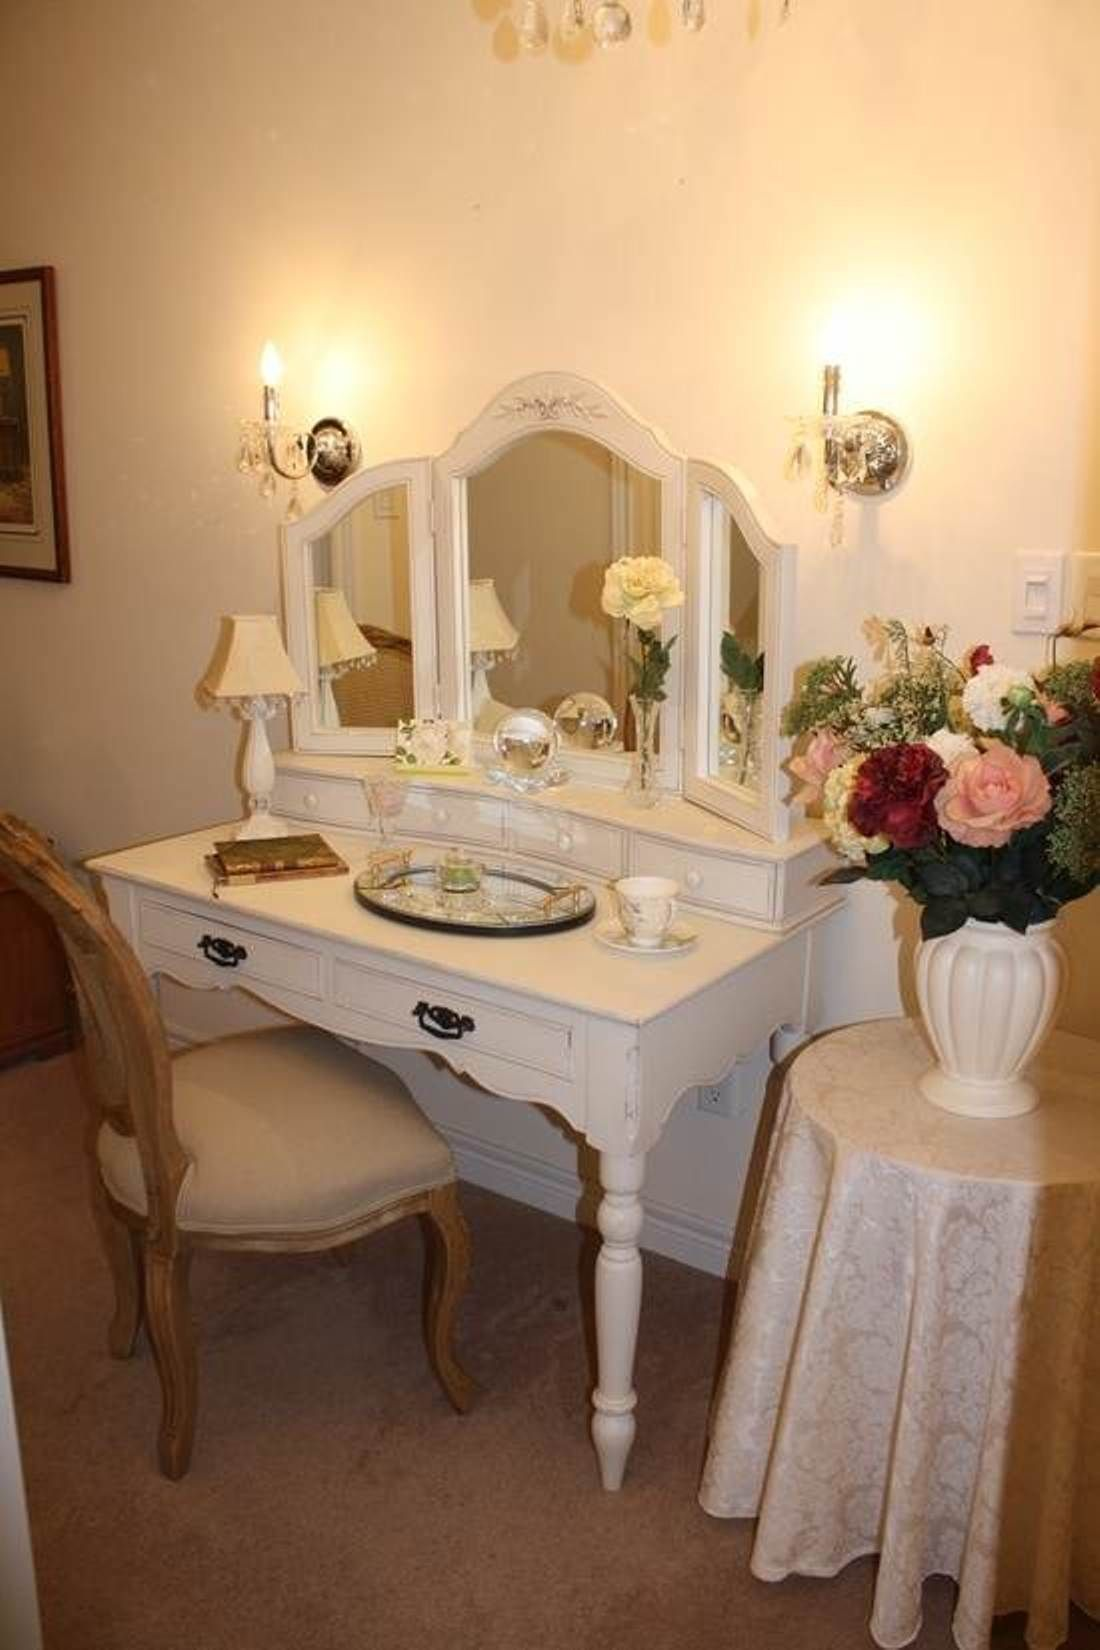 Charming Furniture, Simple White Small Wooden Antique Vanity Table Design With  Elegant Chair On Brown Floor As Well Beautiful Wall Lamp Beside Mirror  Along With ...